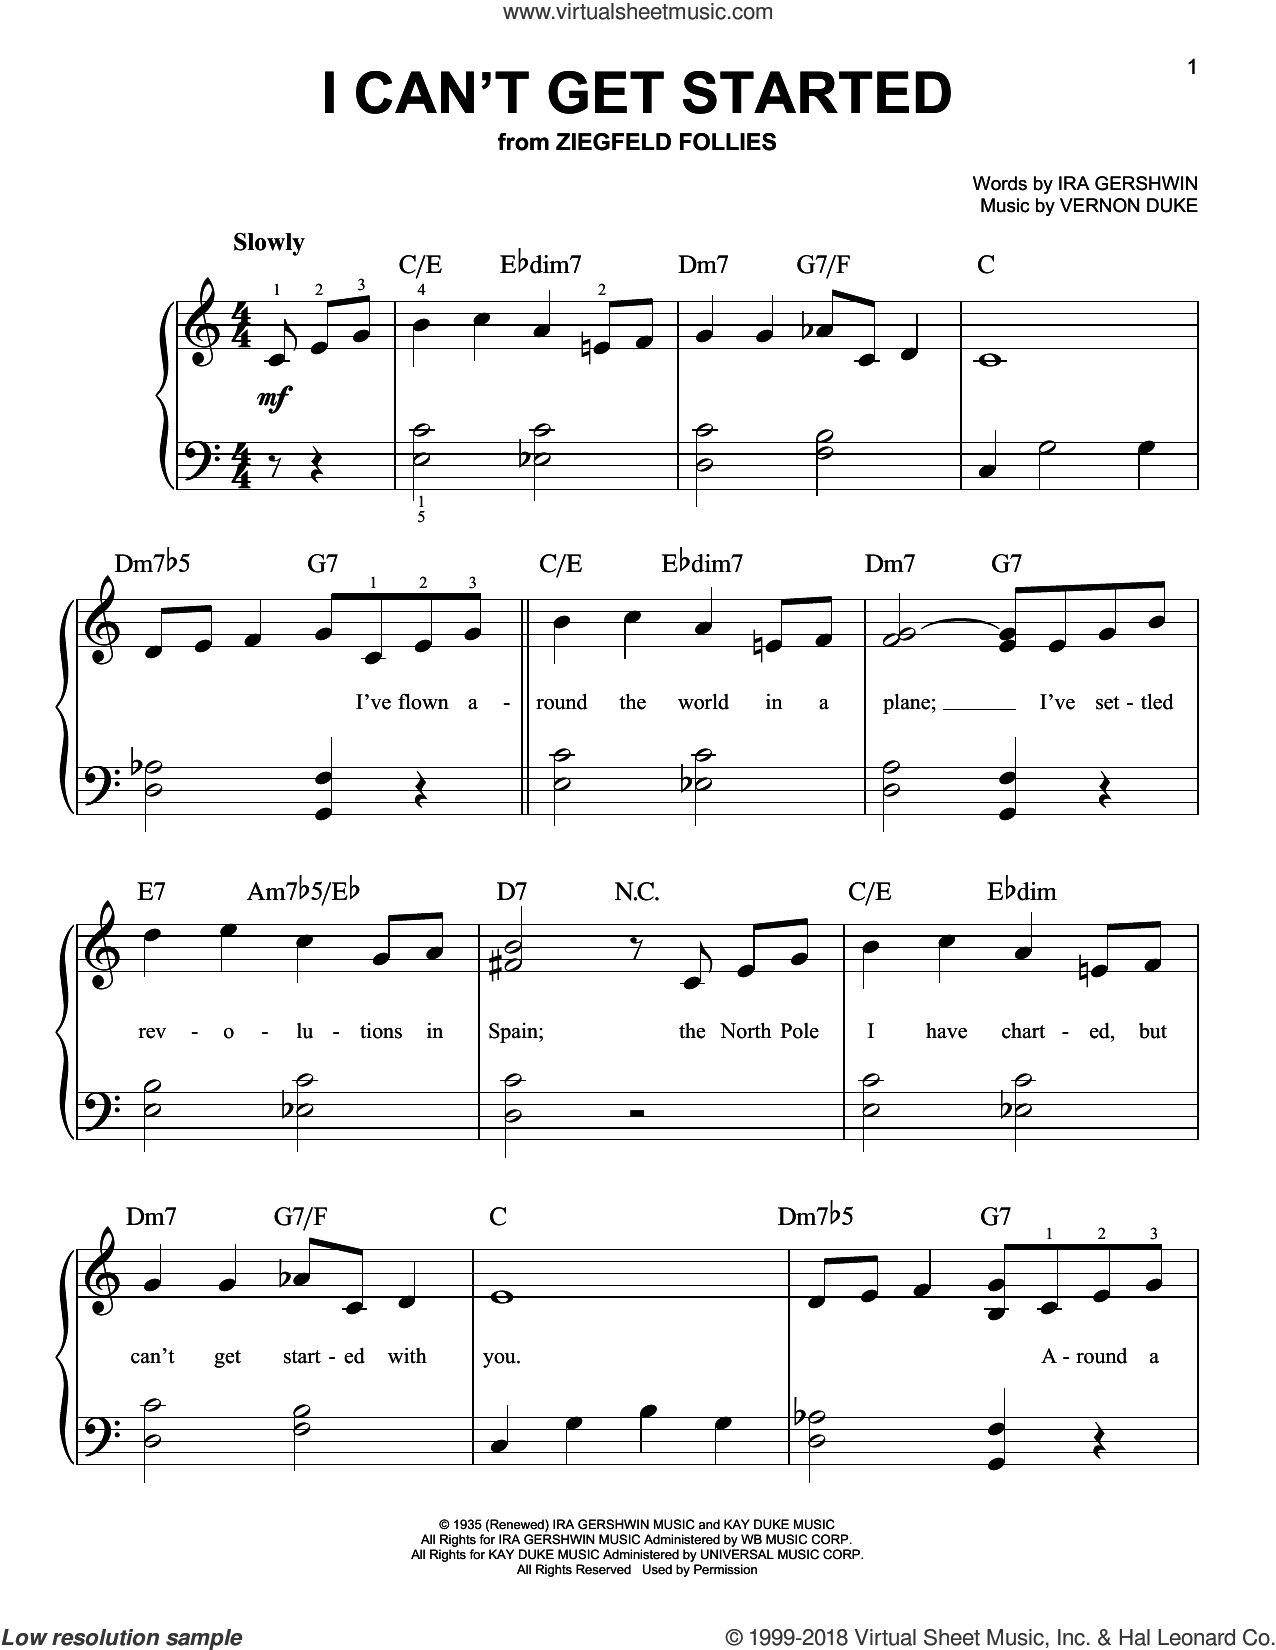 I Can't Get Started sheet music for piano solo by Ira Gershwin and Vernon Duke, beginner skill level